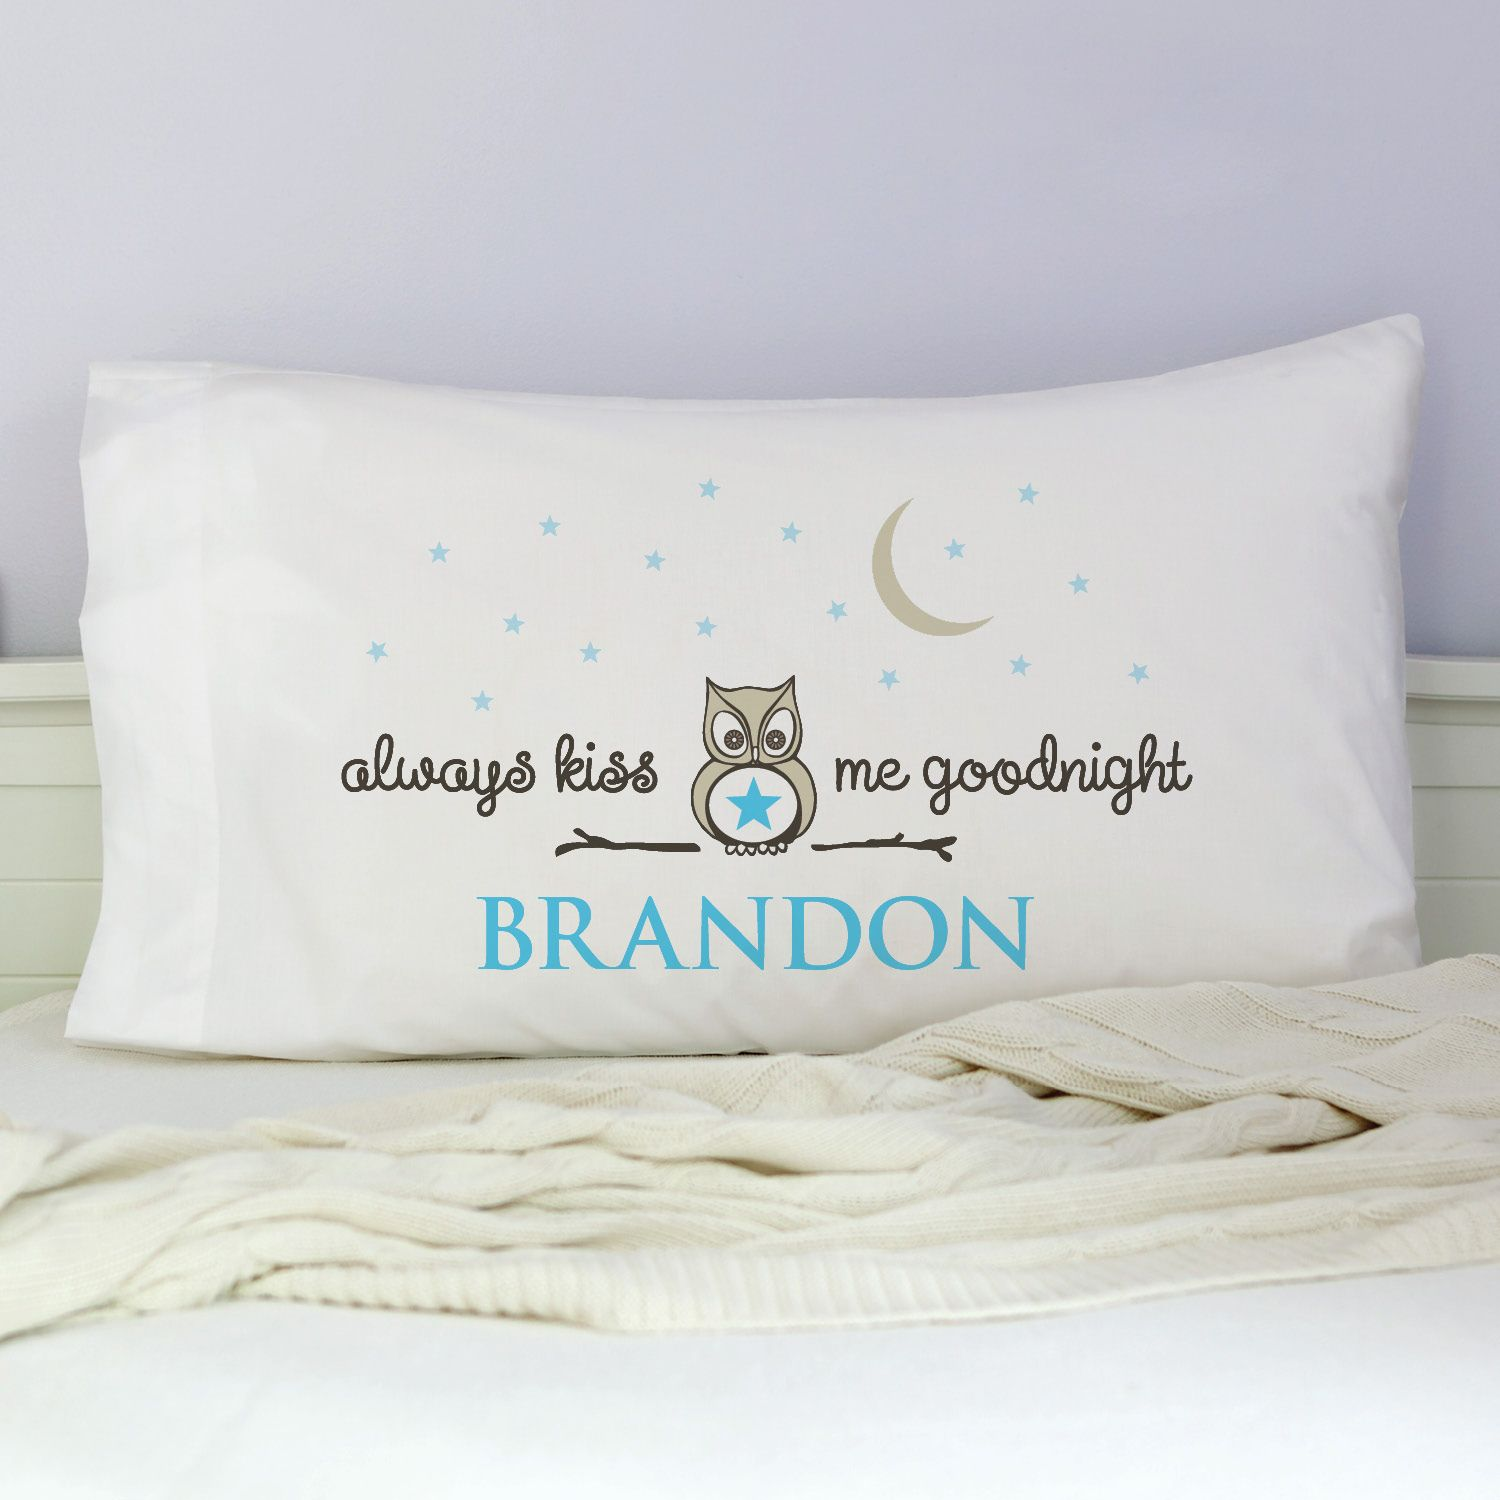 Personalized Bedroom Decor Always Kiss Me Goodnight Personalized Pillowcase Boy Room